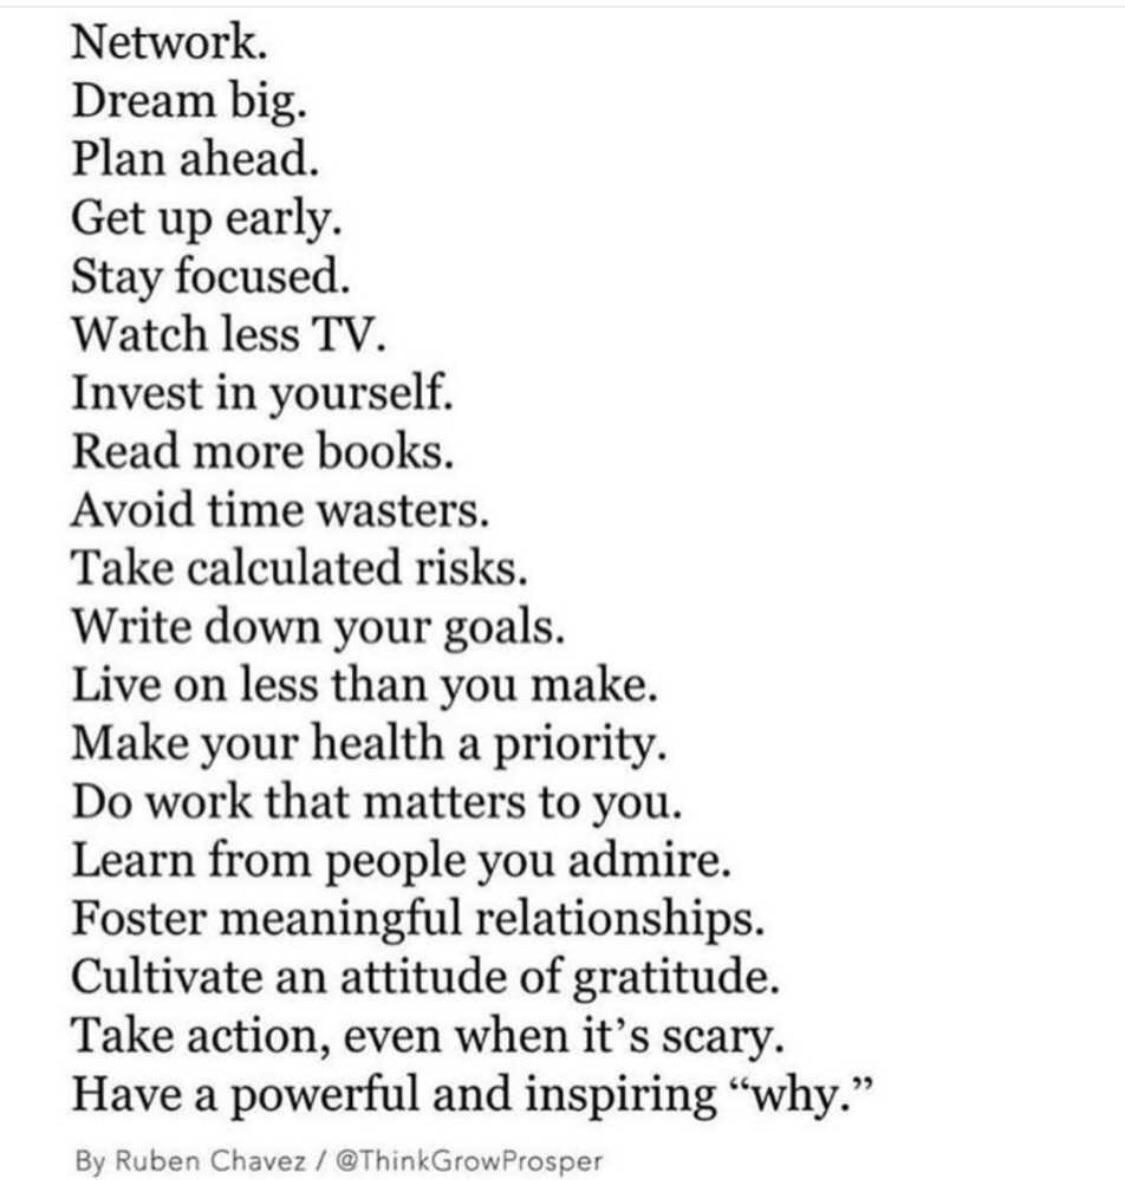 [Image] Take action, even when it's scary.